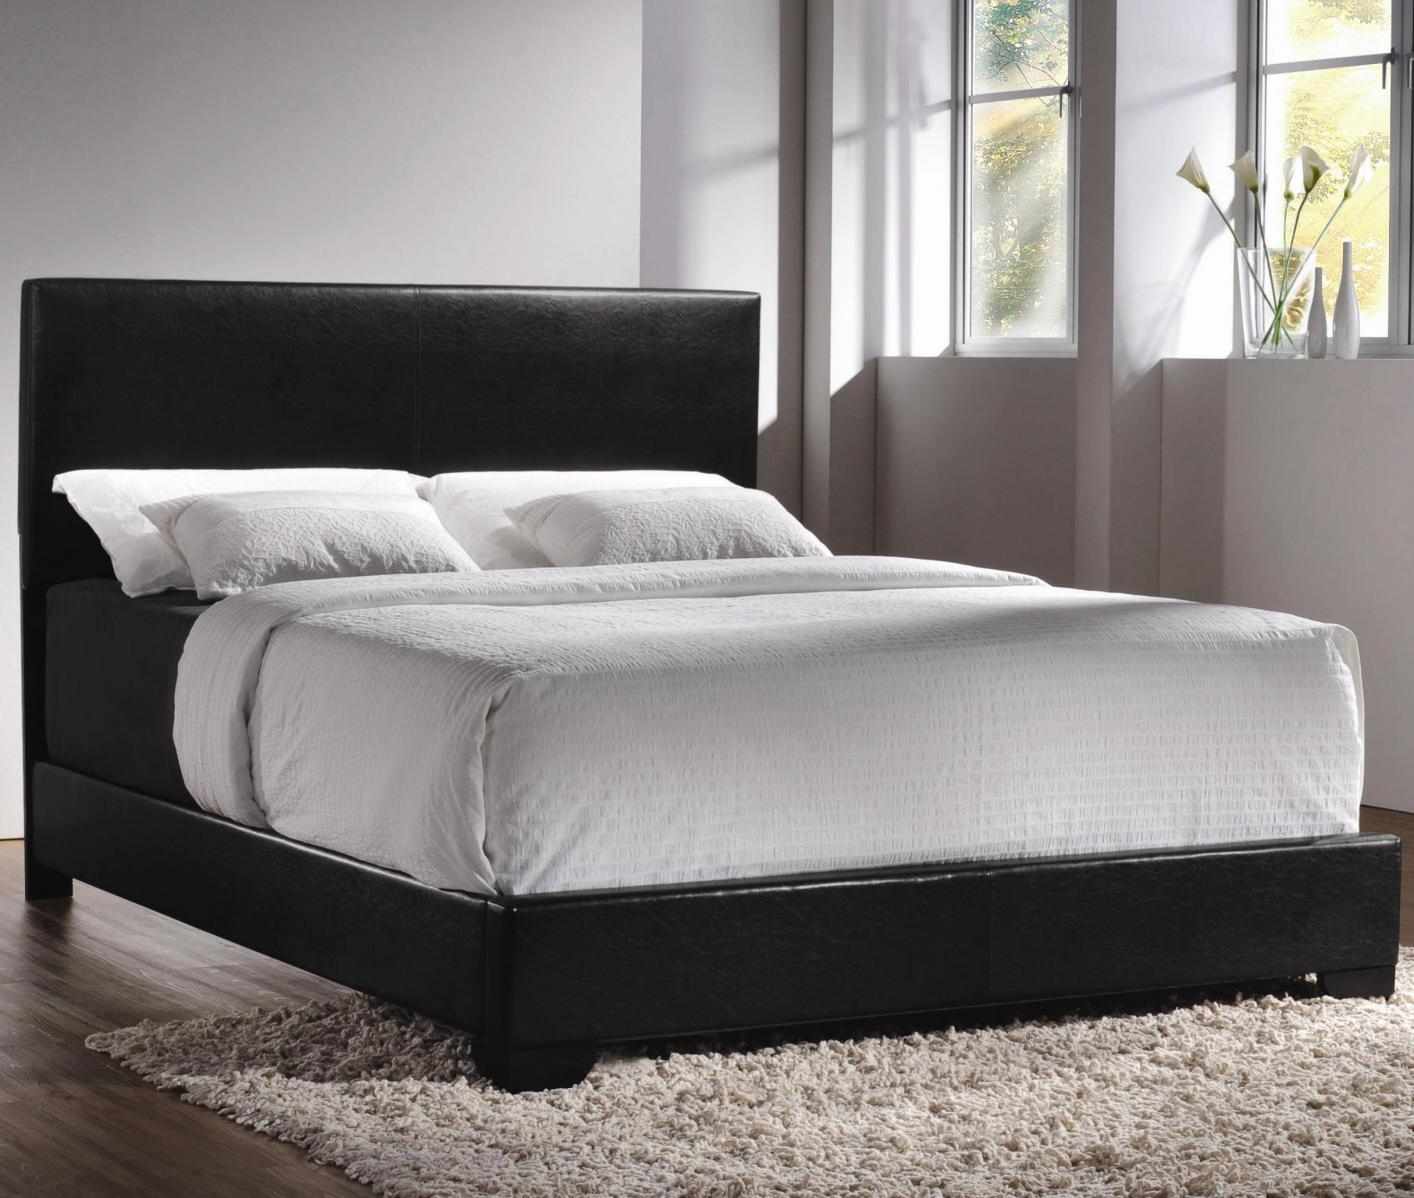 Leather Bed Black Leather Bed